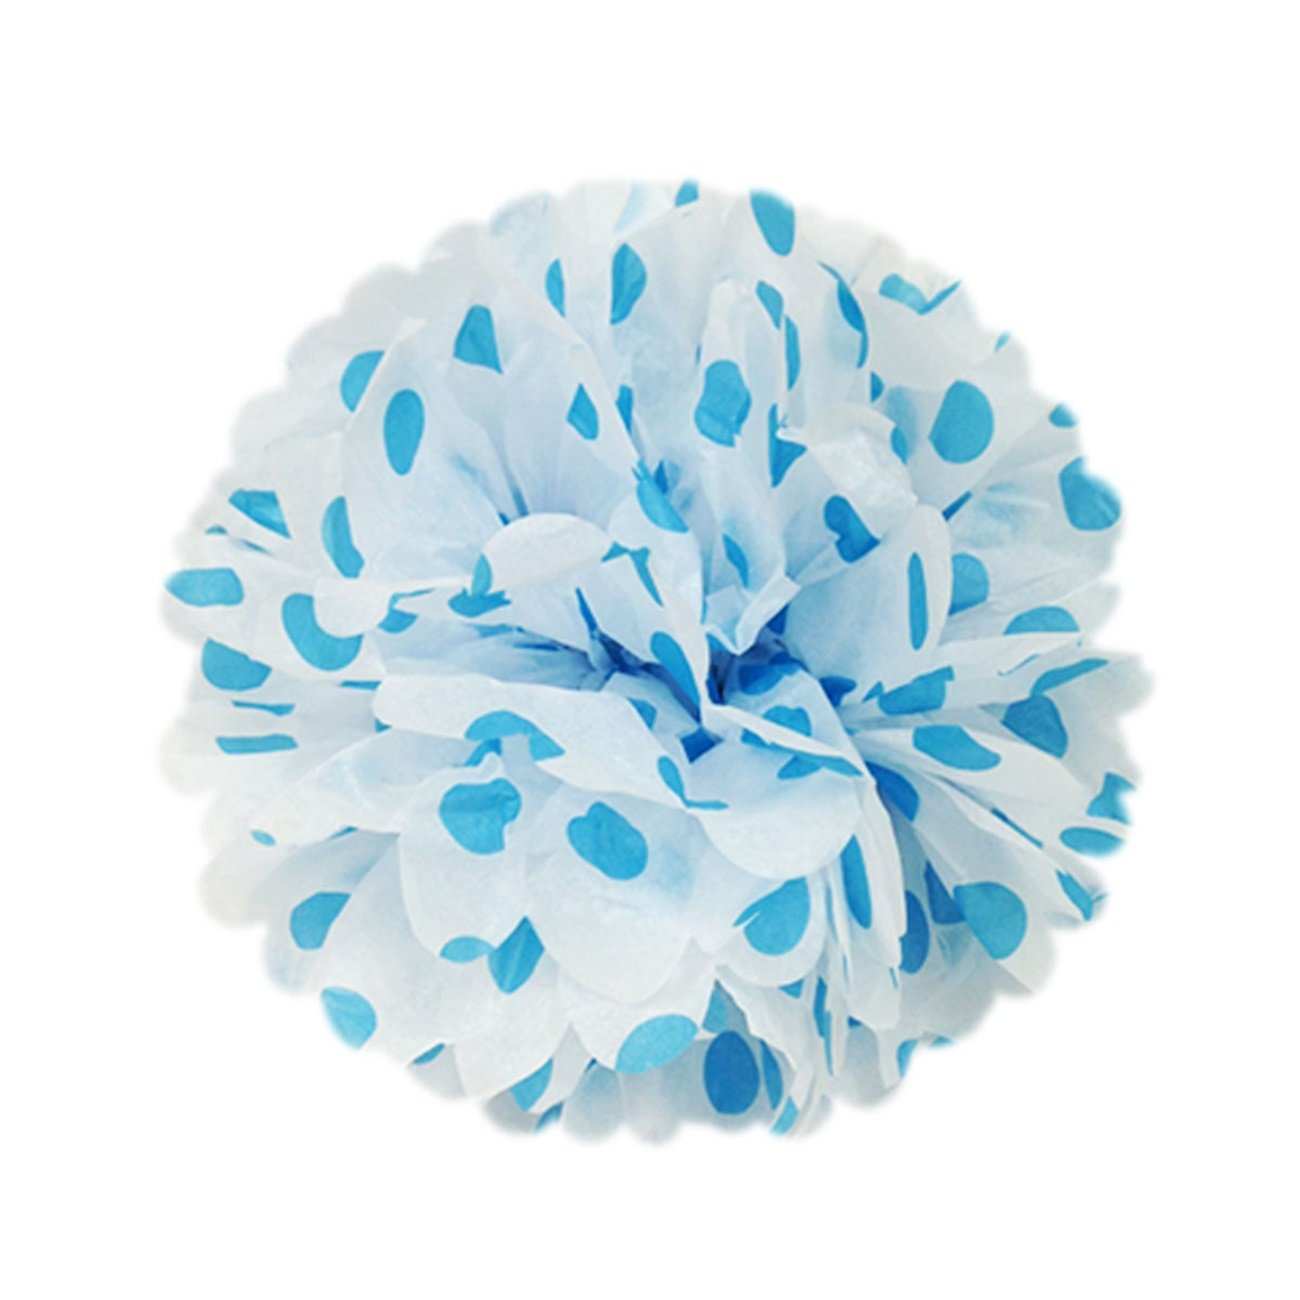 Wrapables A67637c Set of 5 Tissue Pom Poms Party Decorations for Weddings, Birthday Parties, Baby Showers, and Nursery Decor, Hot Pink, 8 8